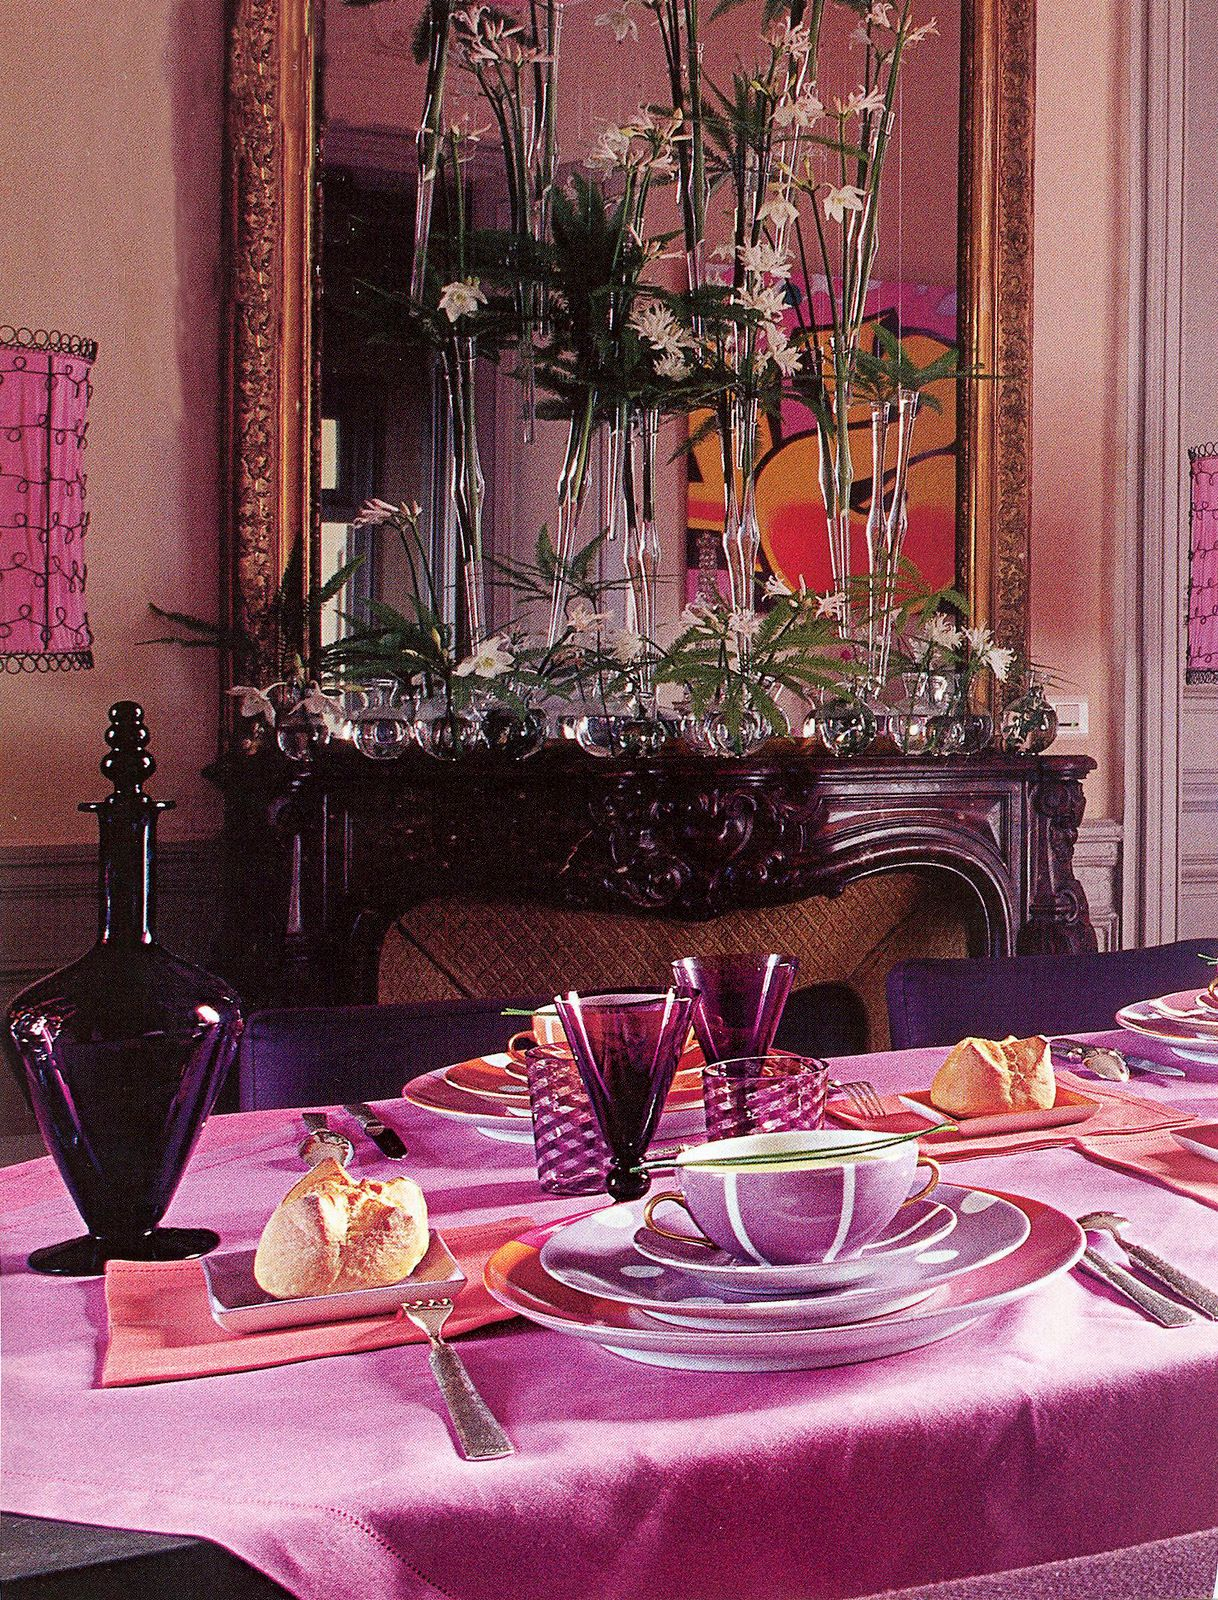 Romantic Dining Room: This Romantic Dining Room Has A Beautiful Color Palette. A